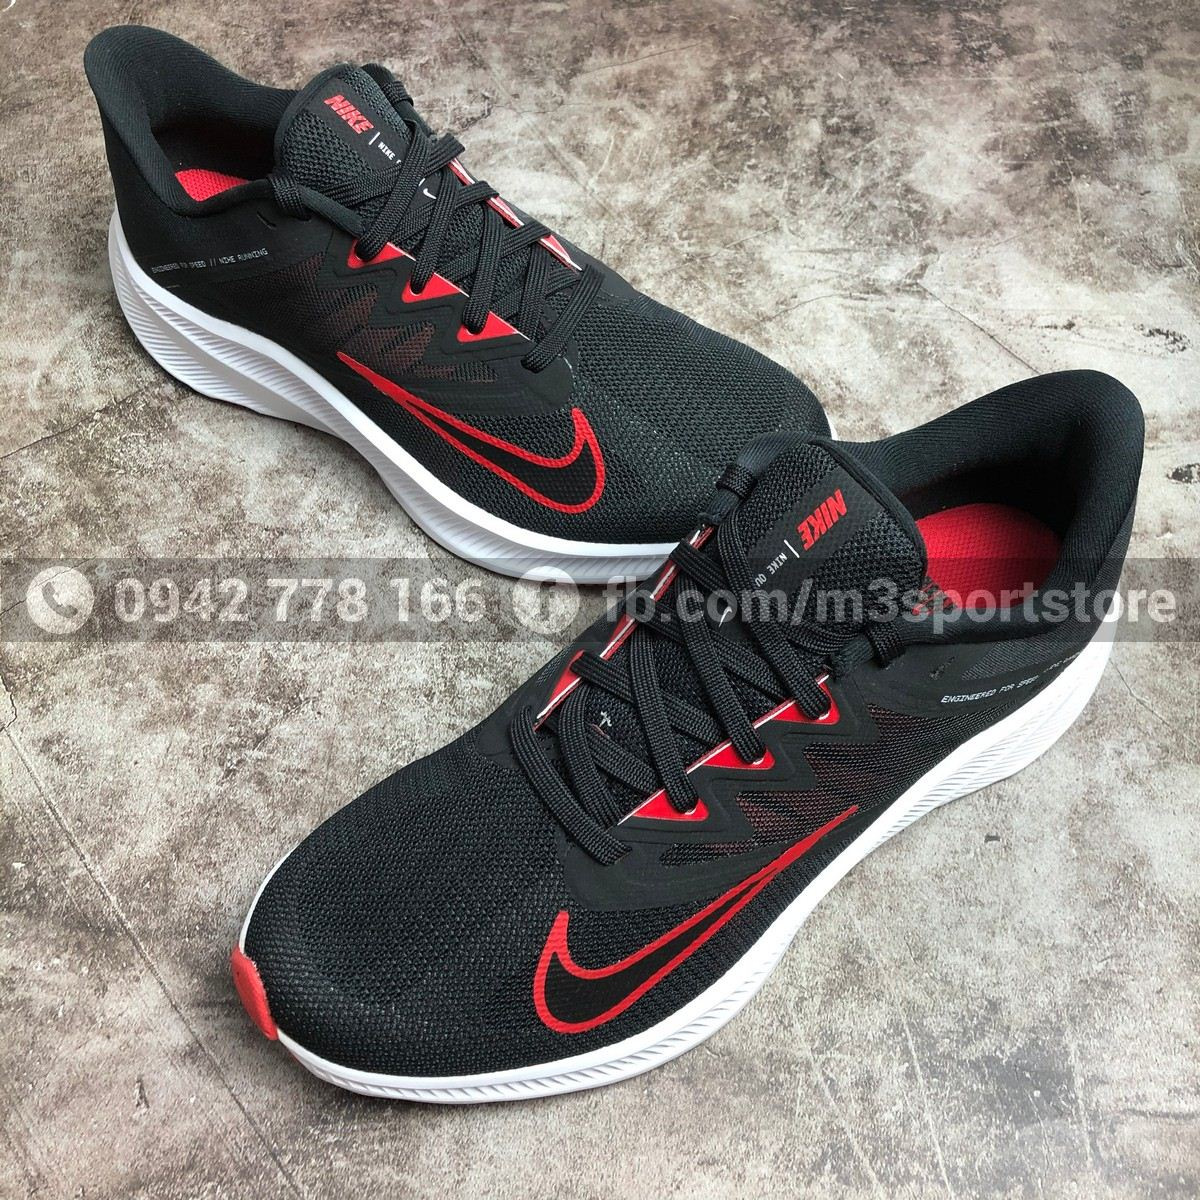 Giầy thể thao nam Nike Quest 3 CD0230